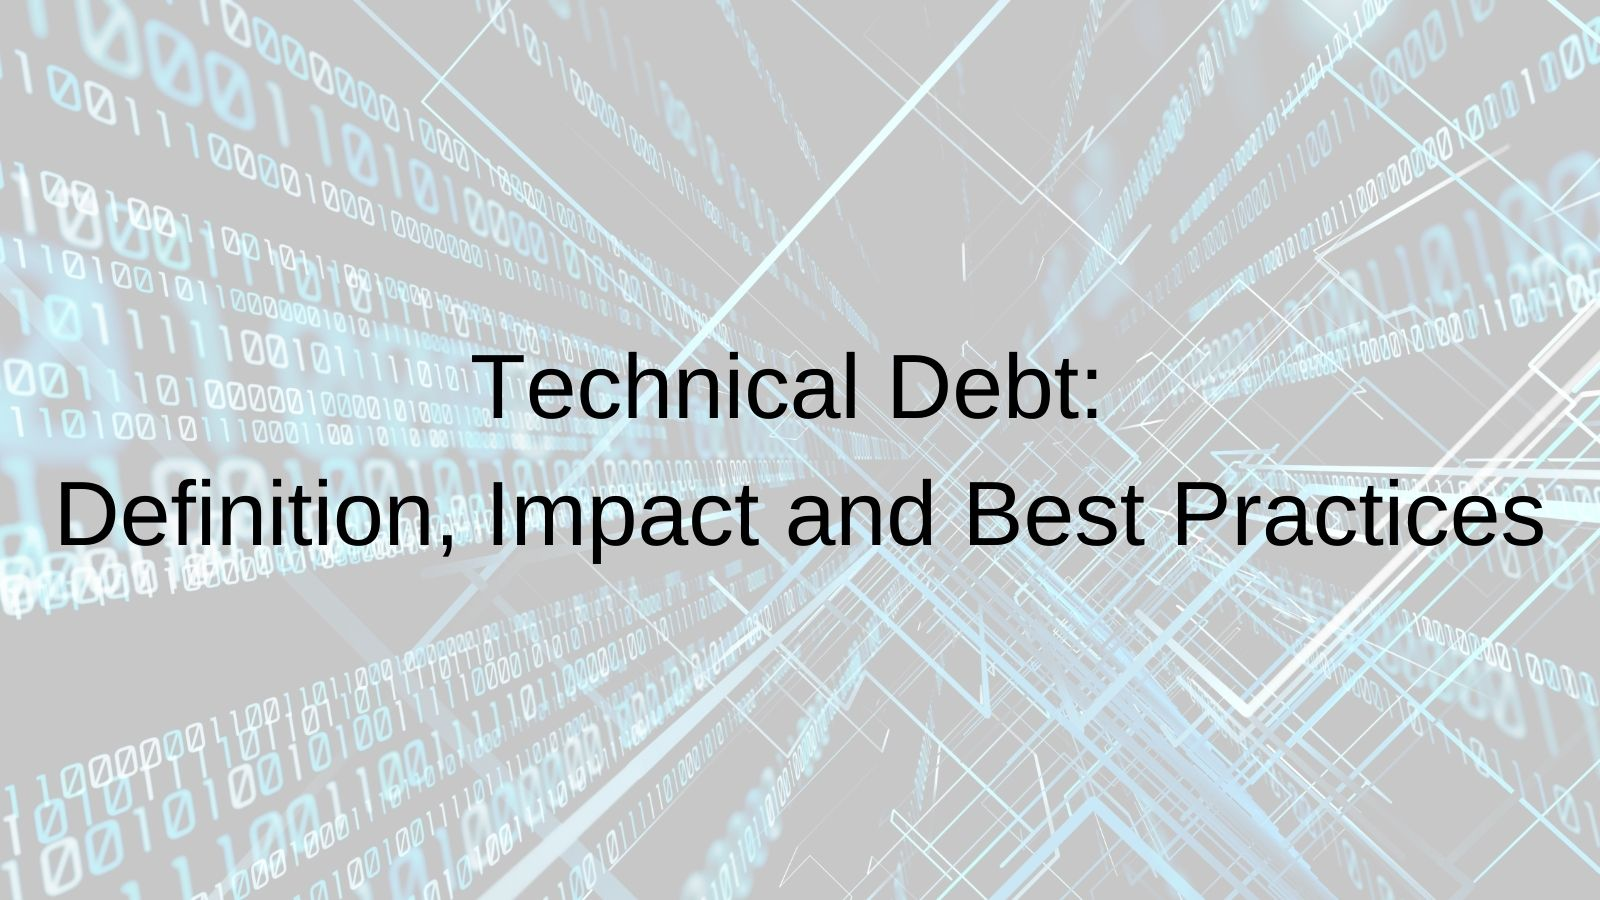 Technical Debt: Definition, Impact and Best Practices_Yuxi Global